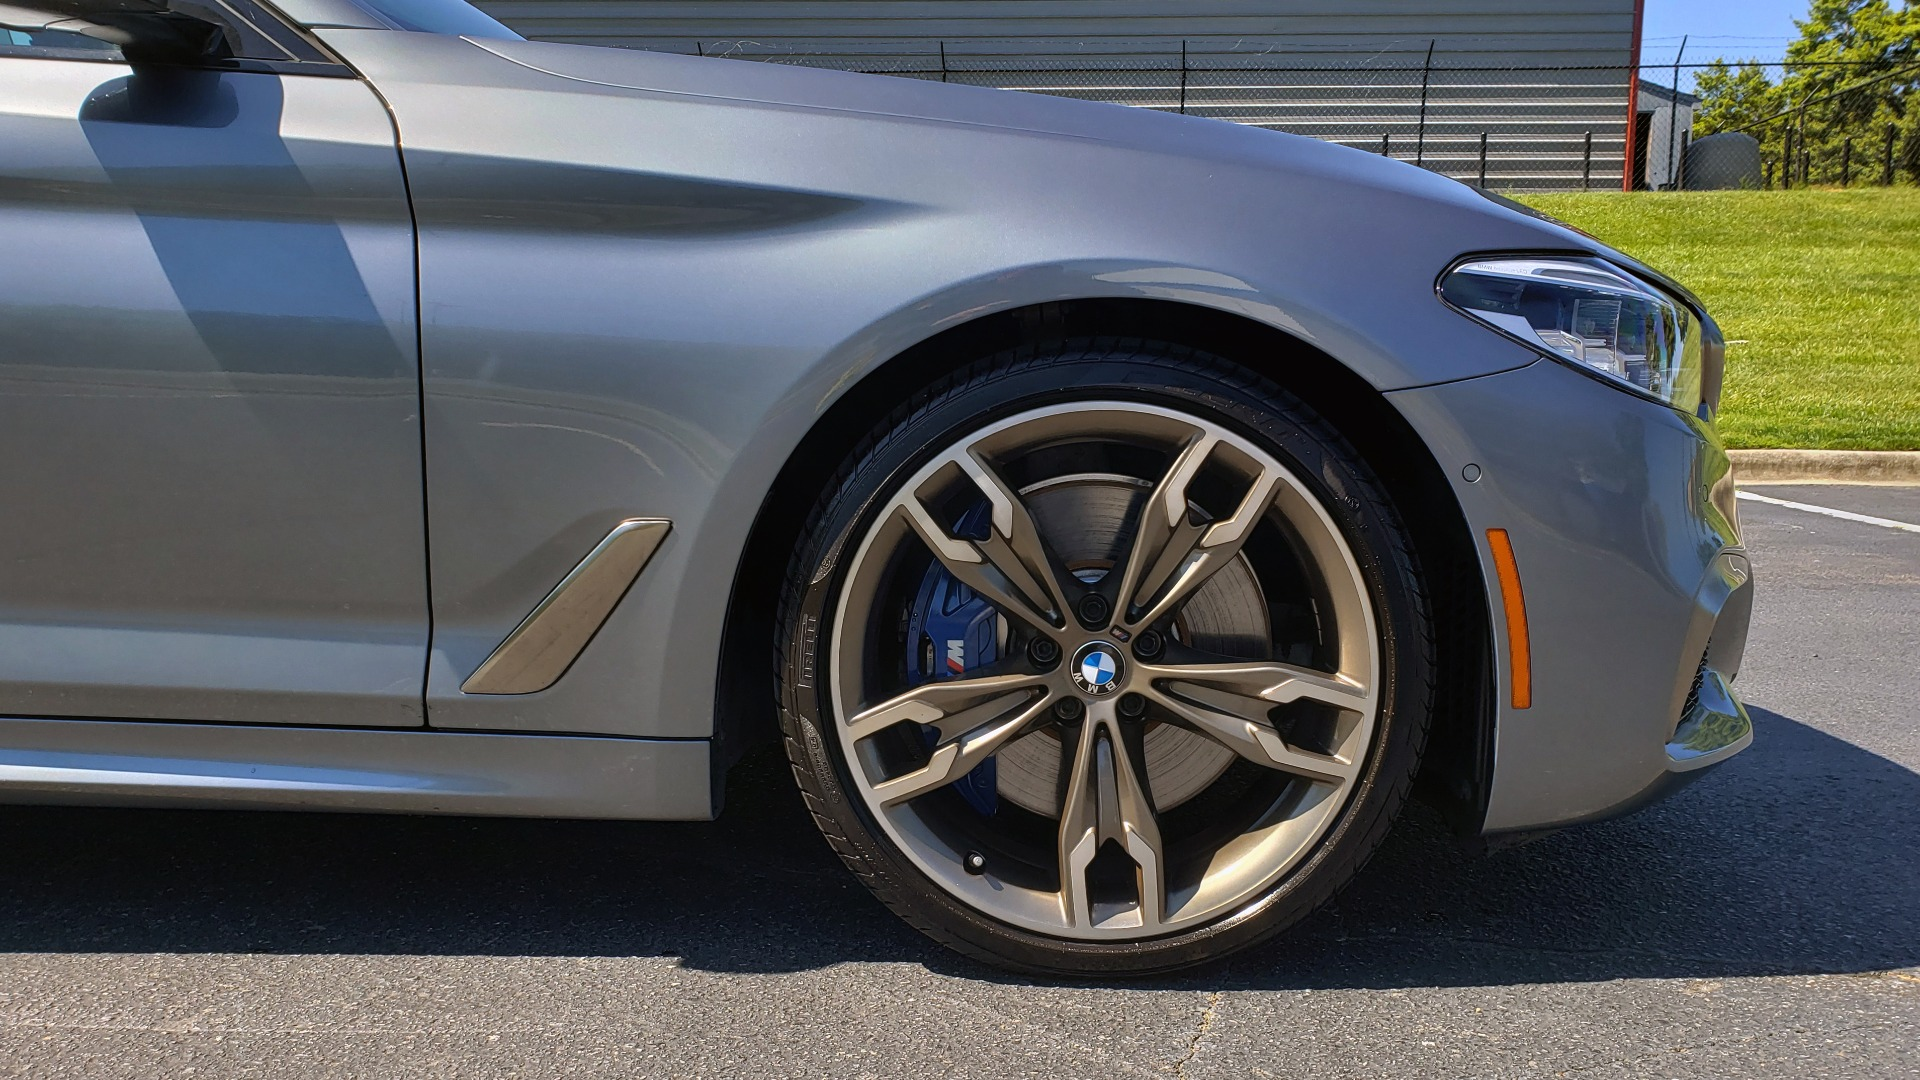 Used 2018 BMW 5 SERIES M550I XDRIVE / EXEC PKG / LUX / DRVR ASST / CLD WTHR / ACTIVE DR for sale Sold at Formula Imports in Charlotte NC 28227 89